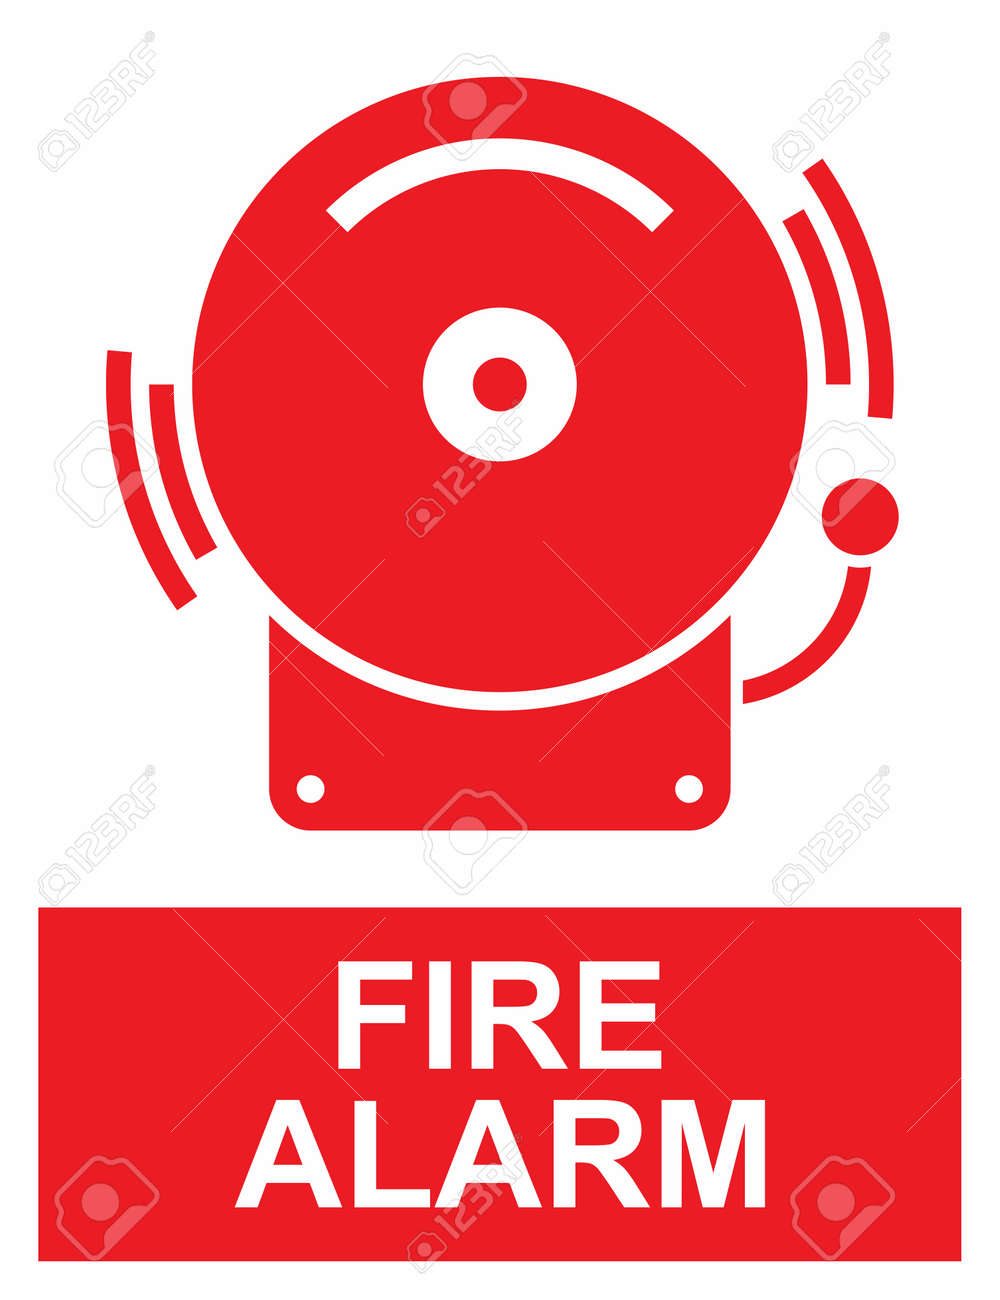 fire alarm sign royalty free cliparts vectors and stock rh 123rf com clipart pictures of fire alarm fire alarm clipart